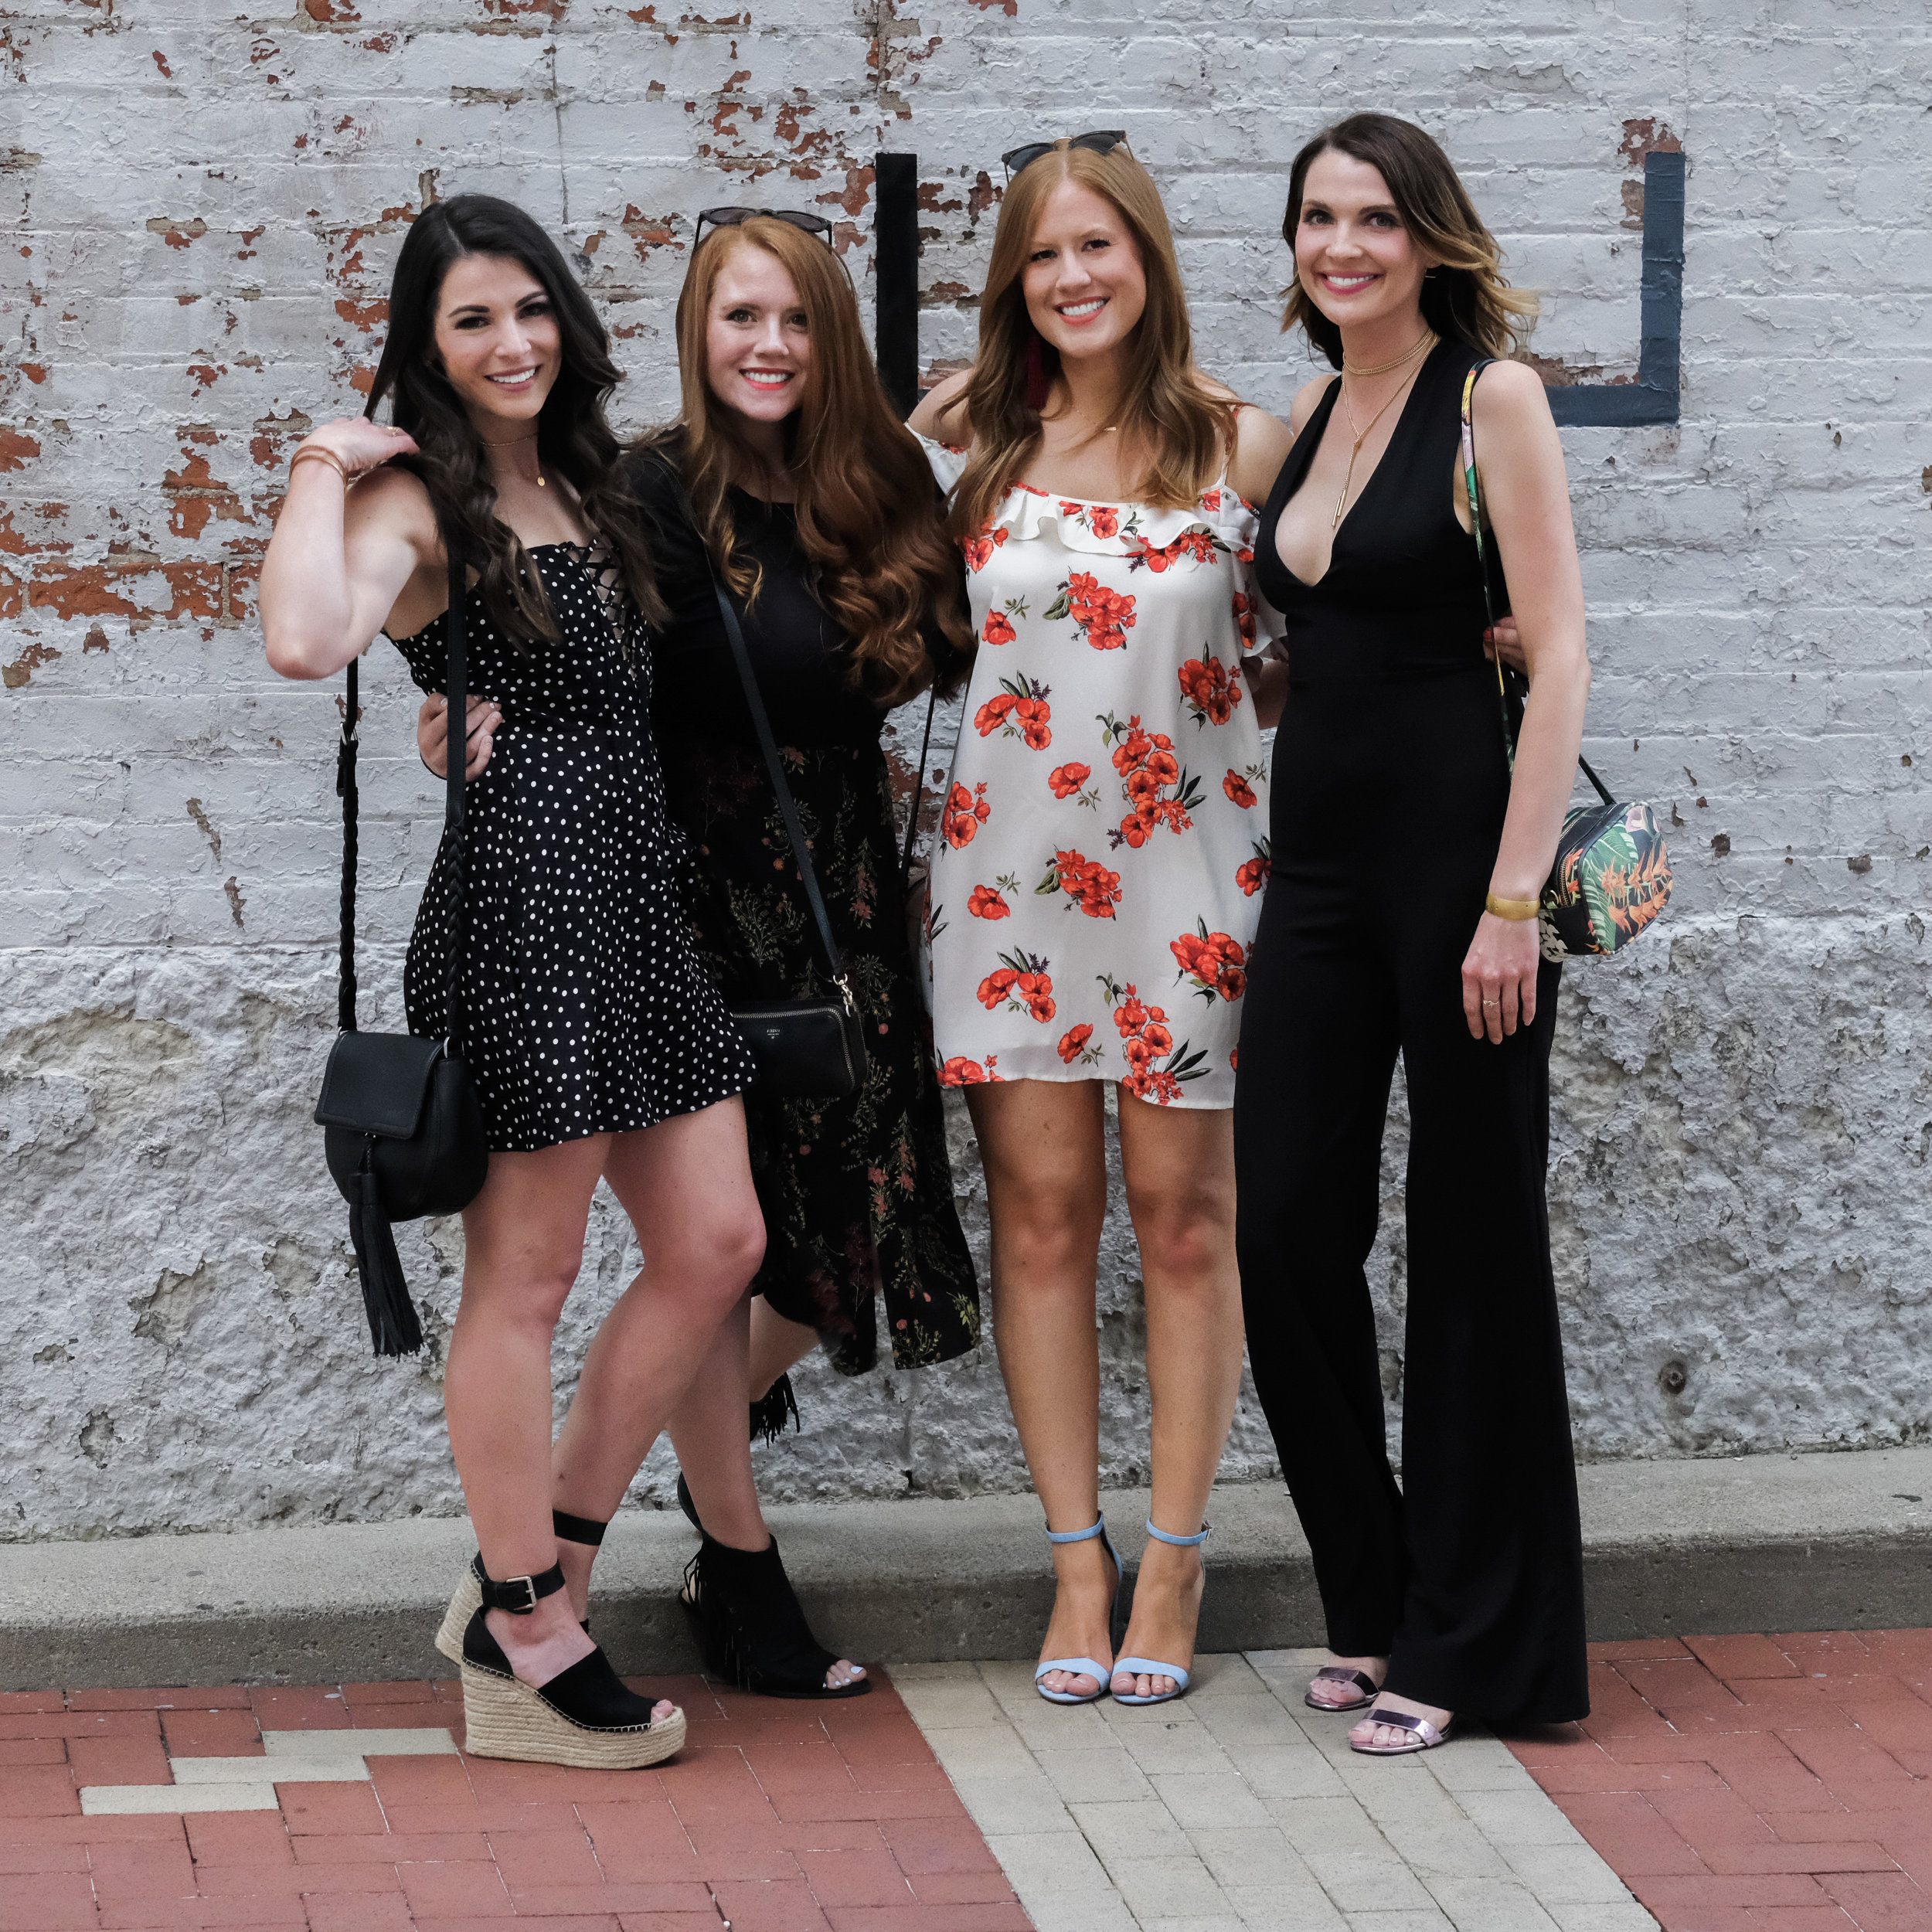 Bachelorette party outfit ideas, Summer bachelorette party in Cincinnati Ohio.